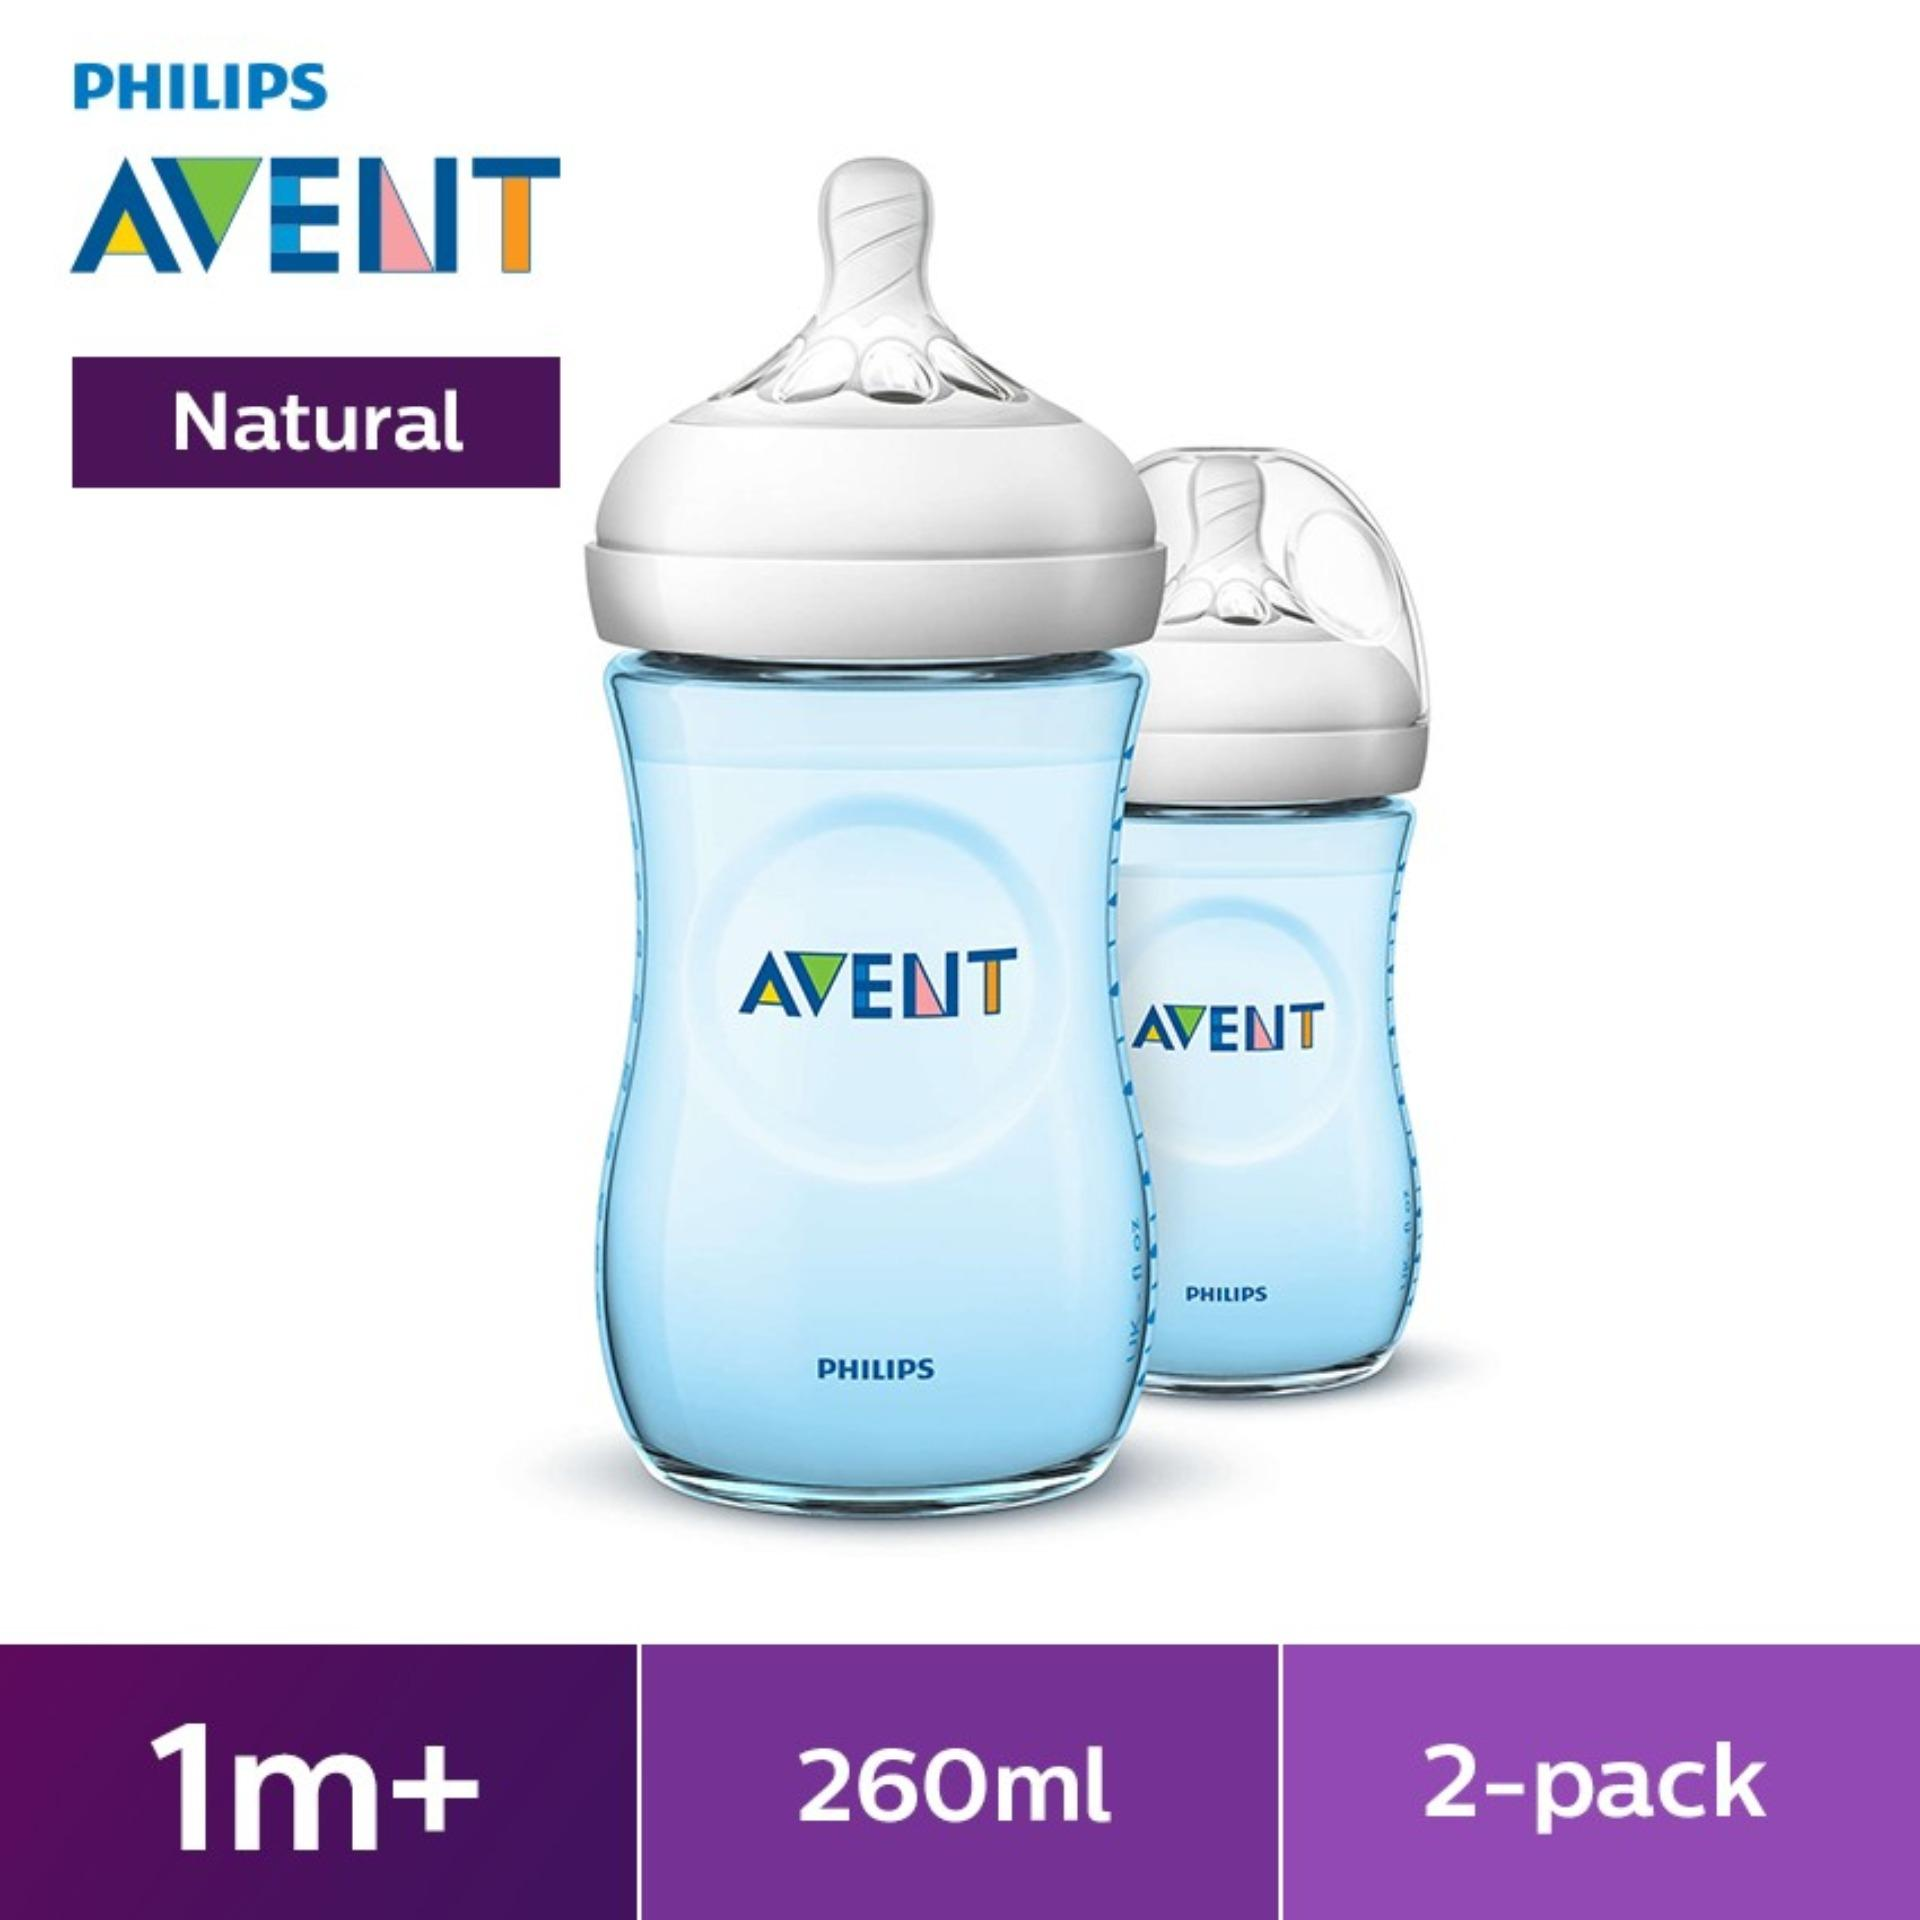 Philips Avent Natural 9oz Bottle Twin Pack - Blue By Lazada Retail Philips Avent.